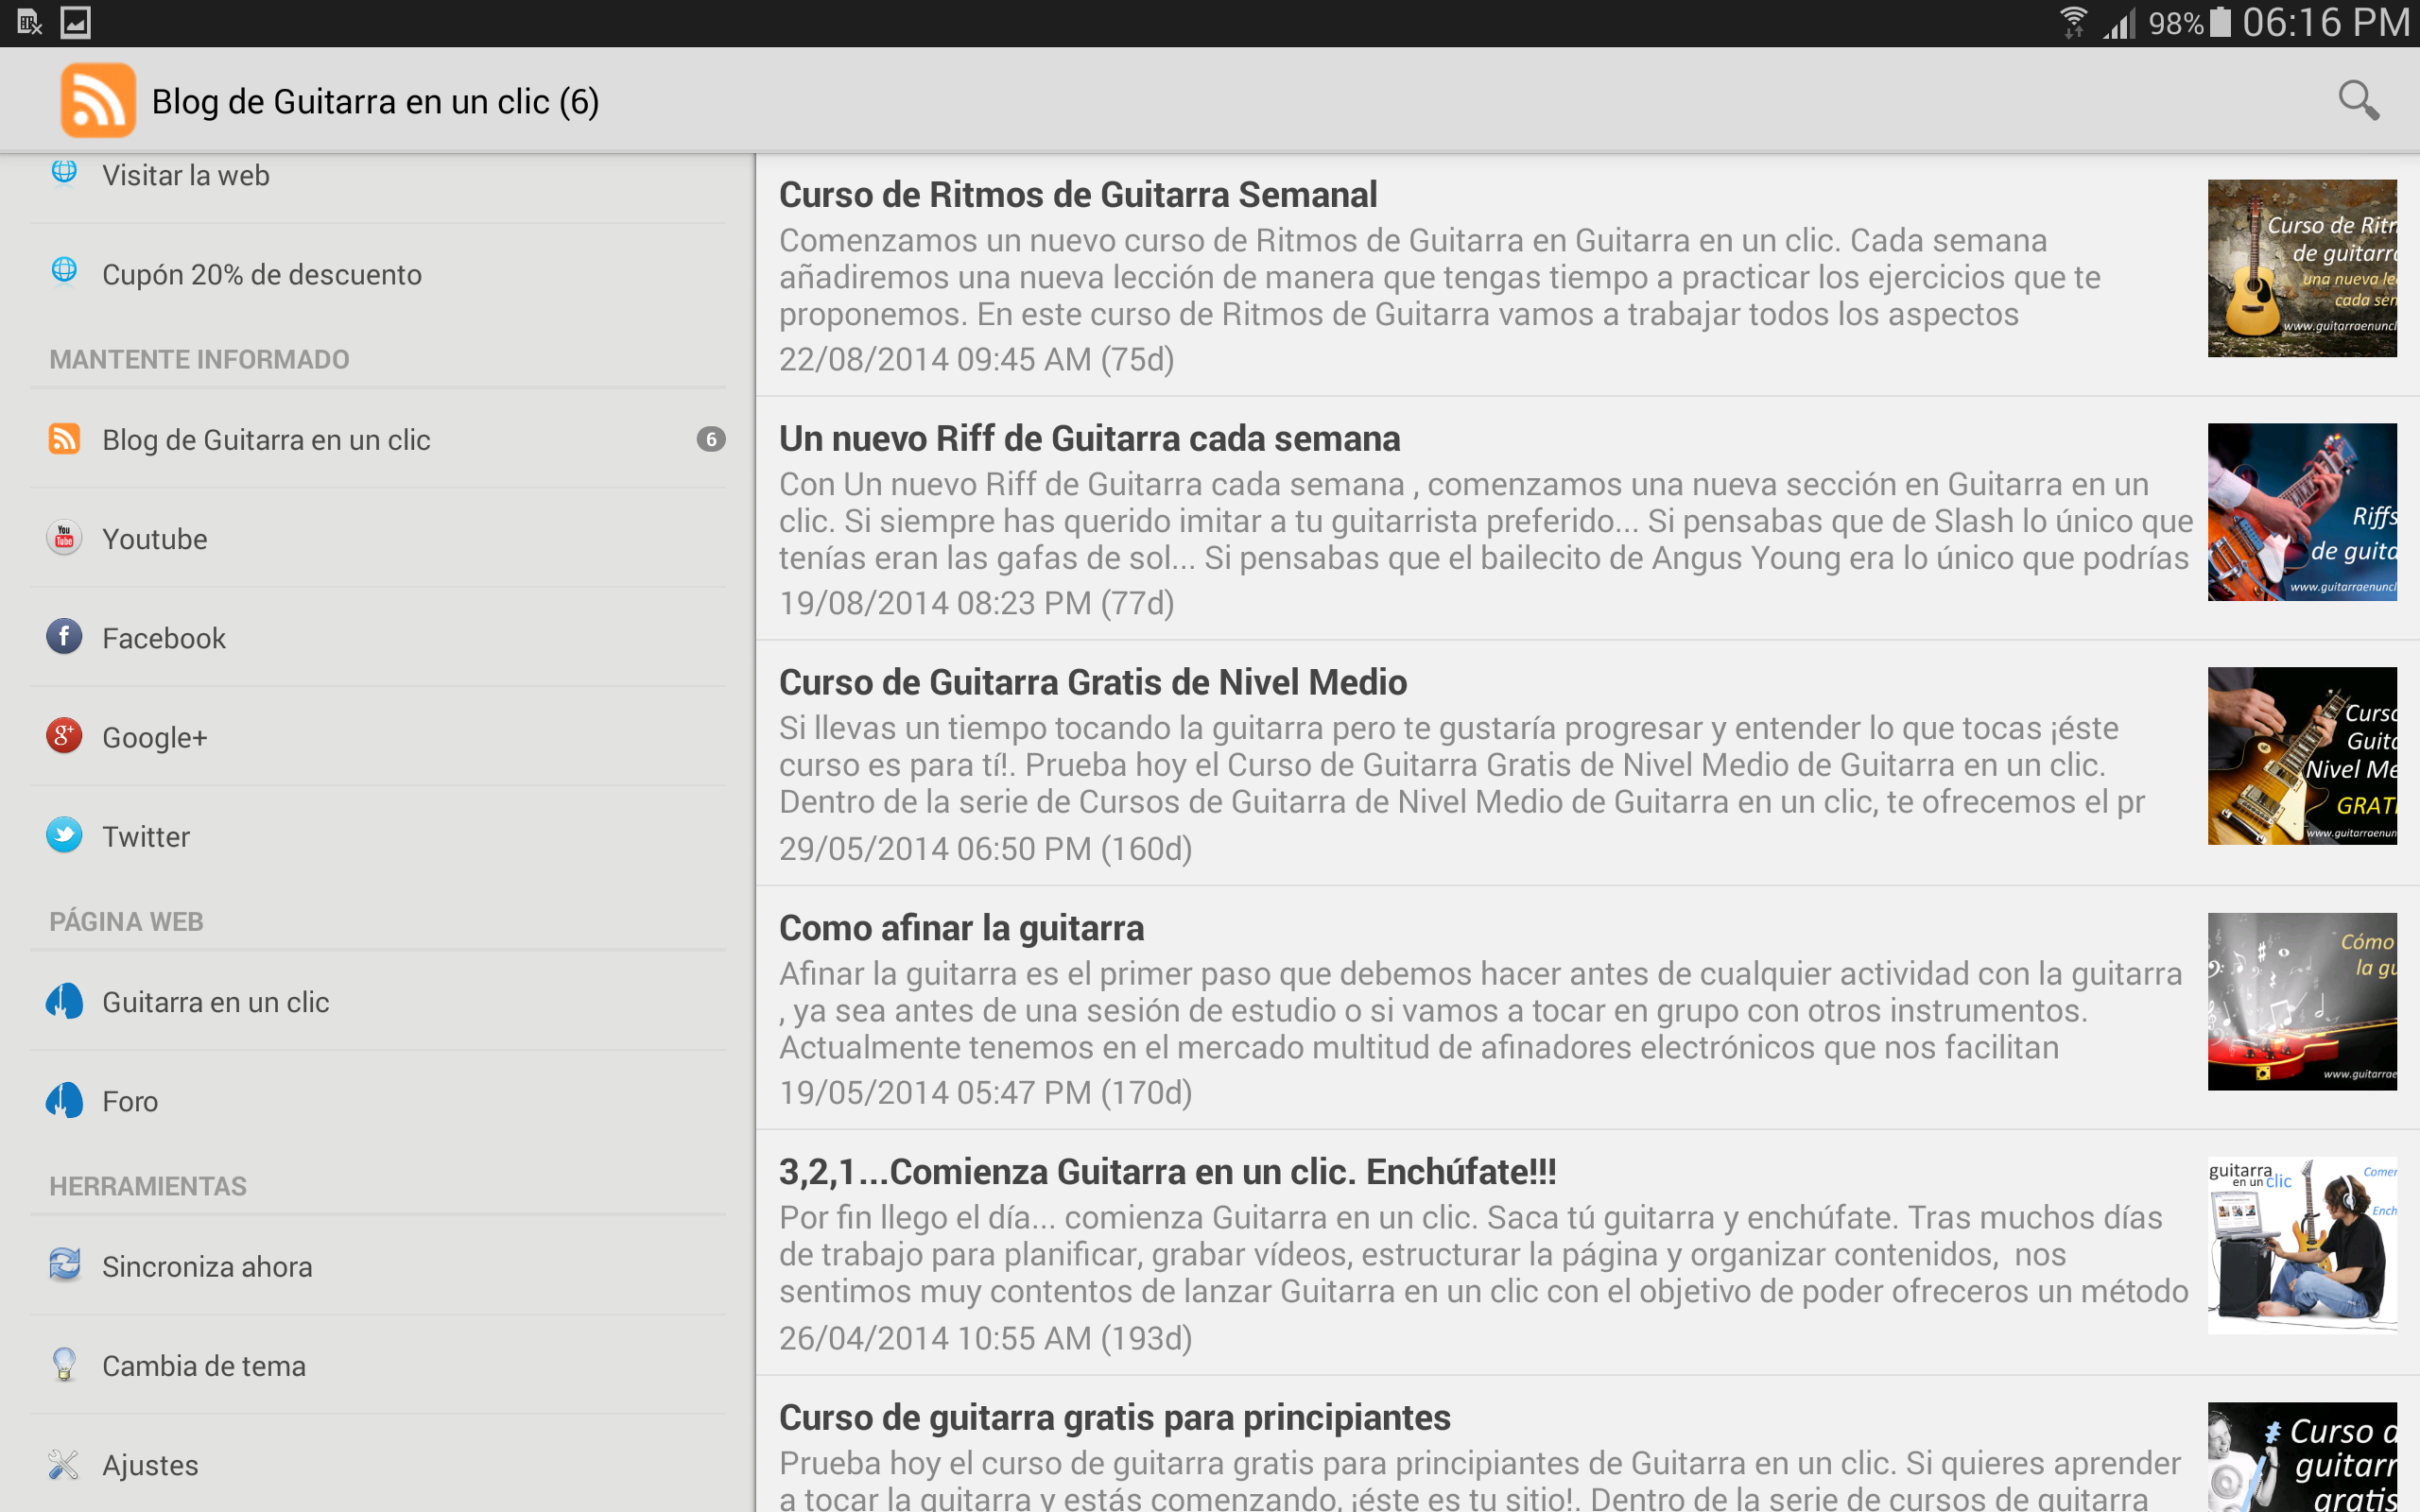 Amazon.com: Guitarra en un clic. Free Guitar Course.: Appstore for Android